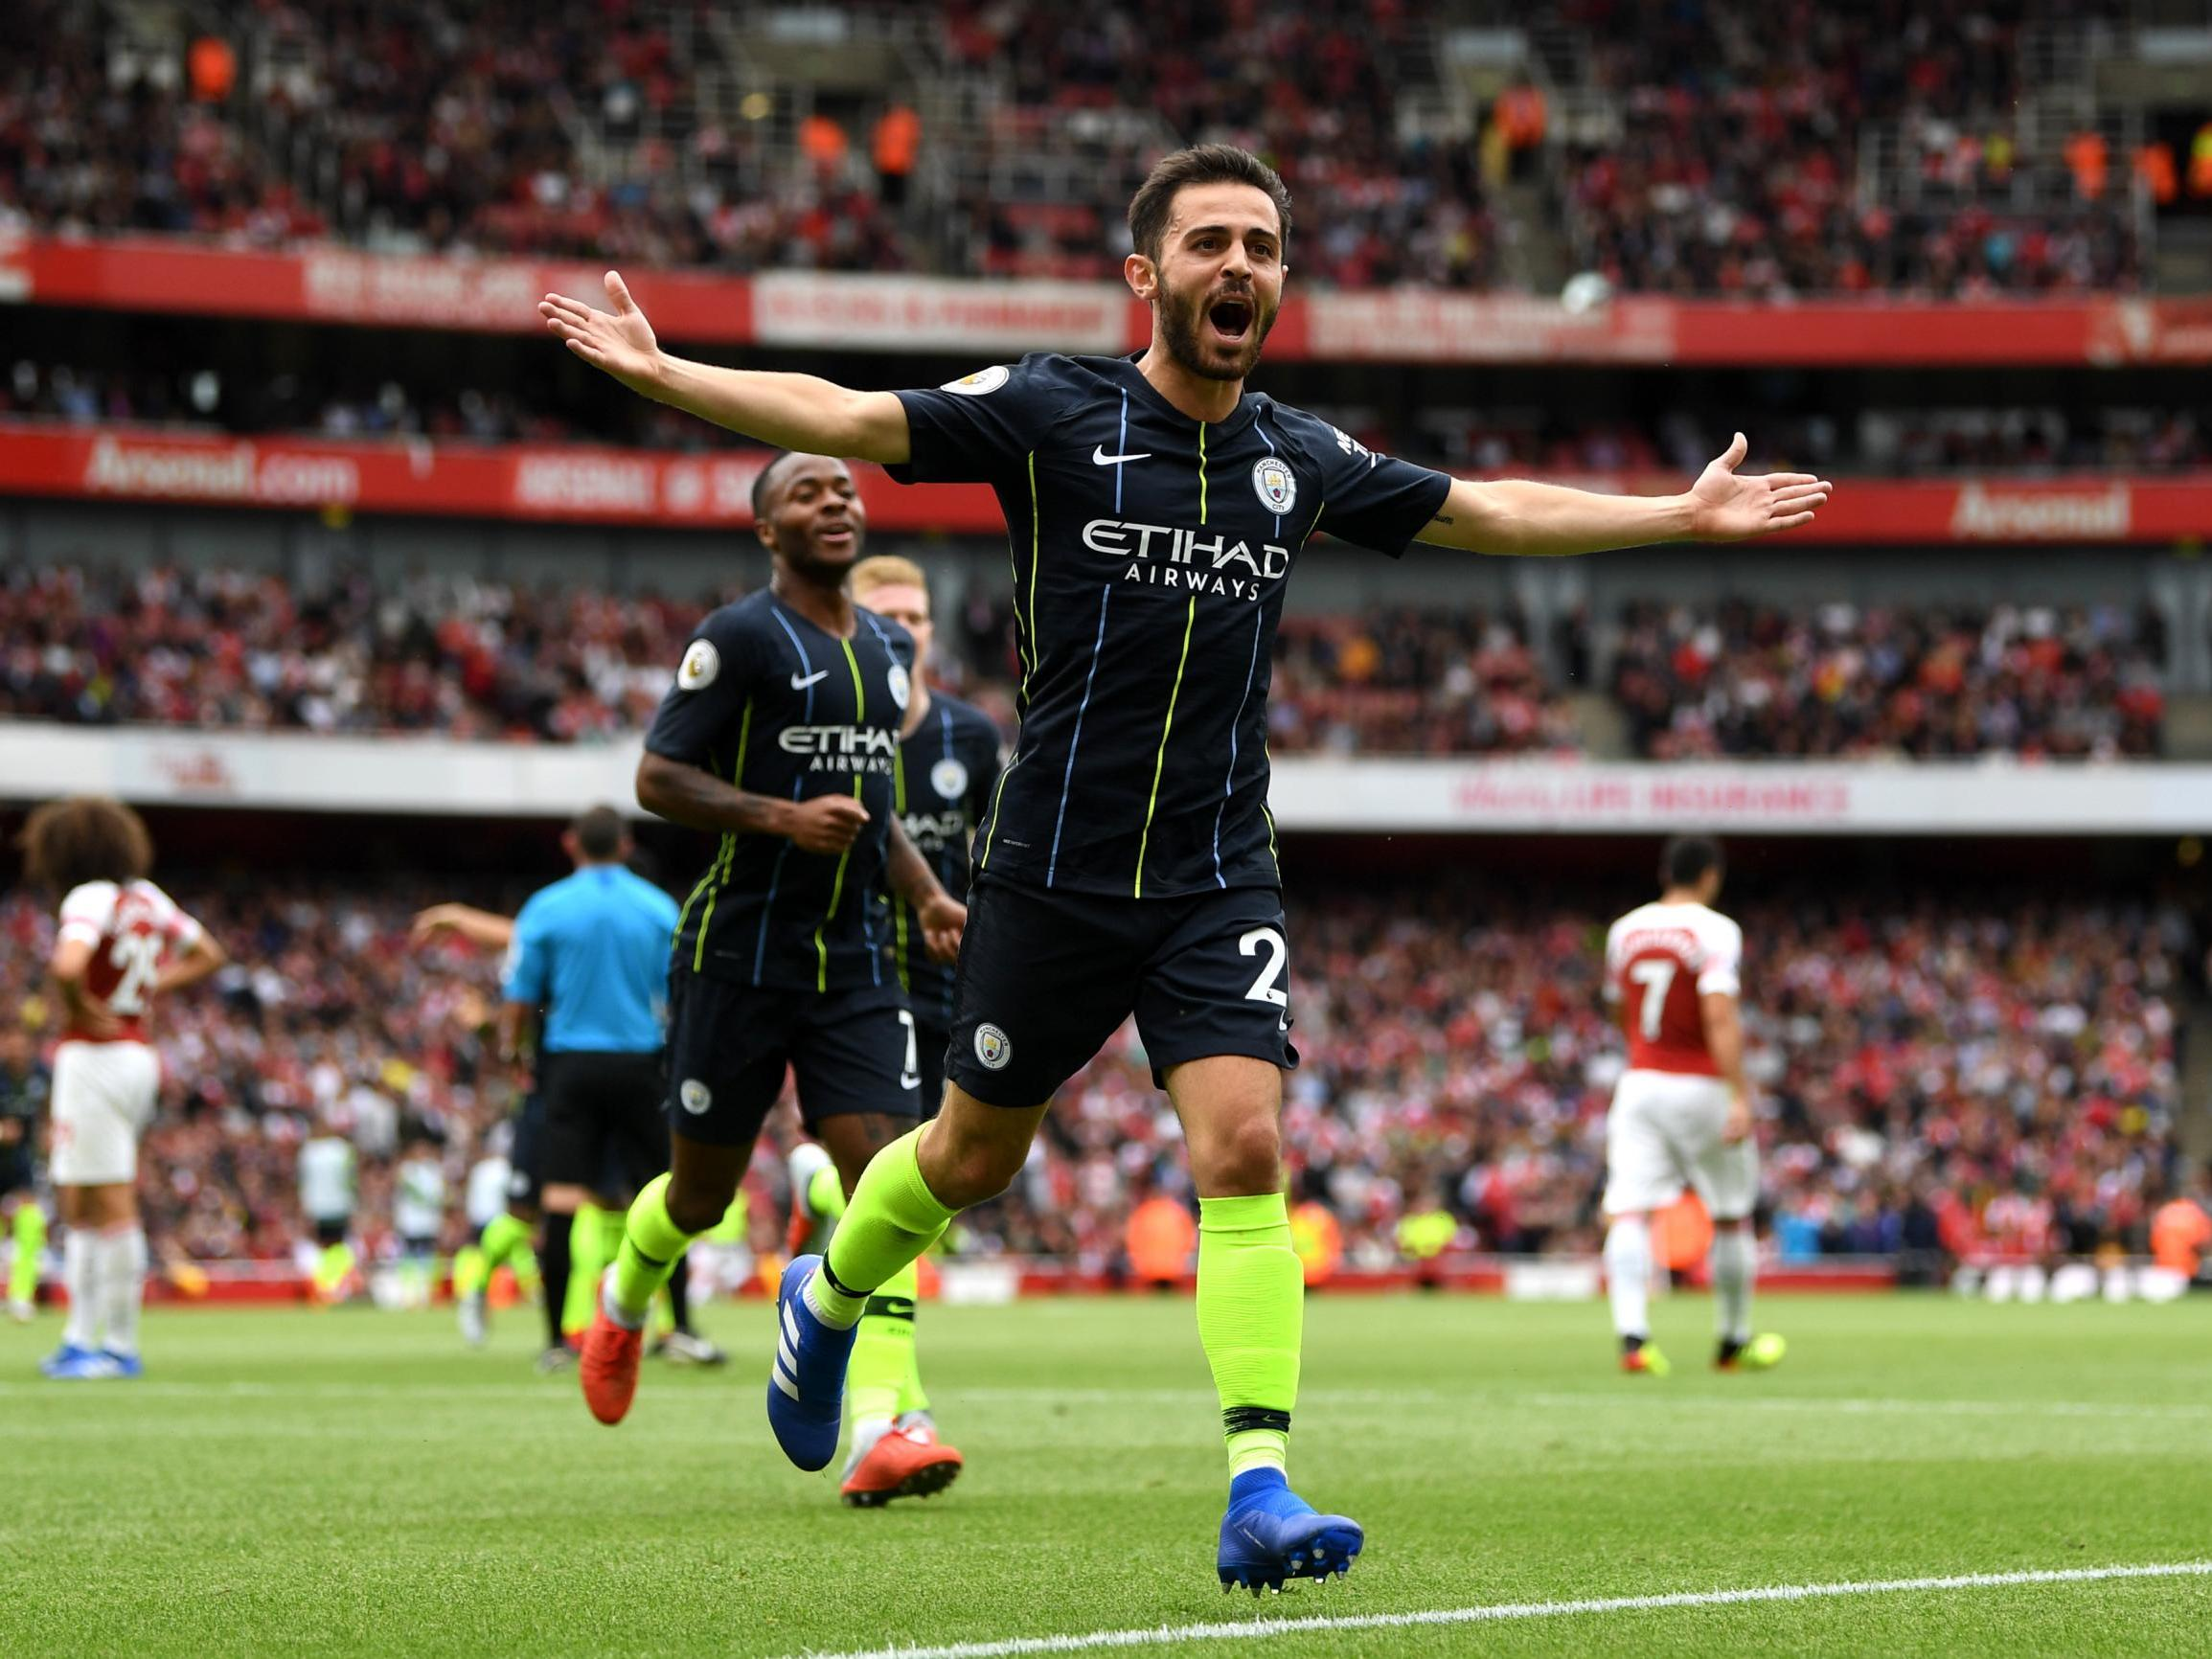 Manchester City vs Huddersfield Premier League preview: Kick-off time, where to watch, TV channel, odds and more